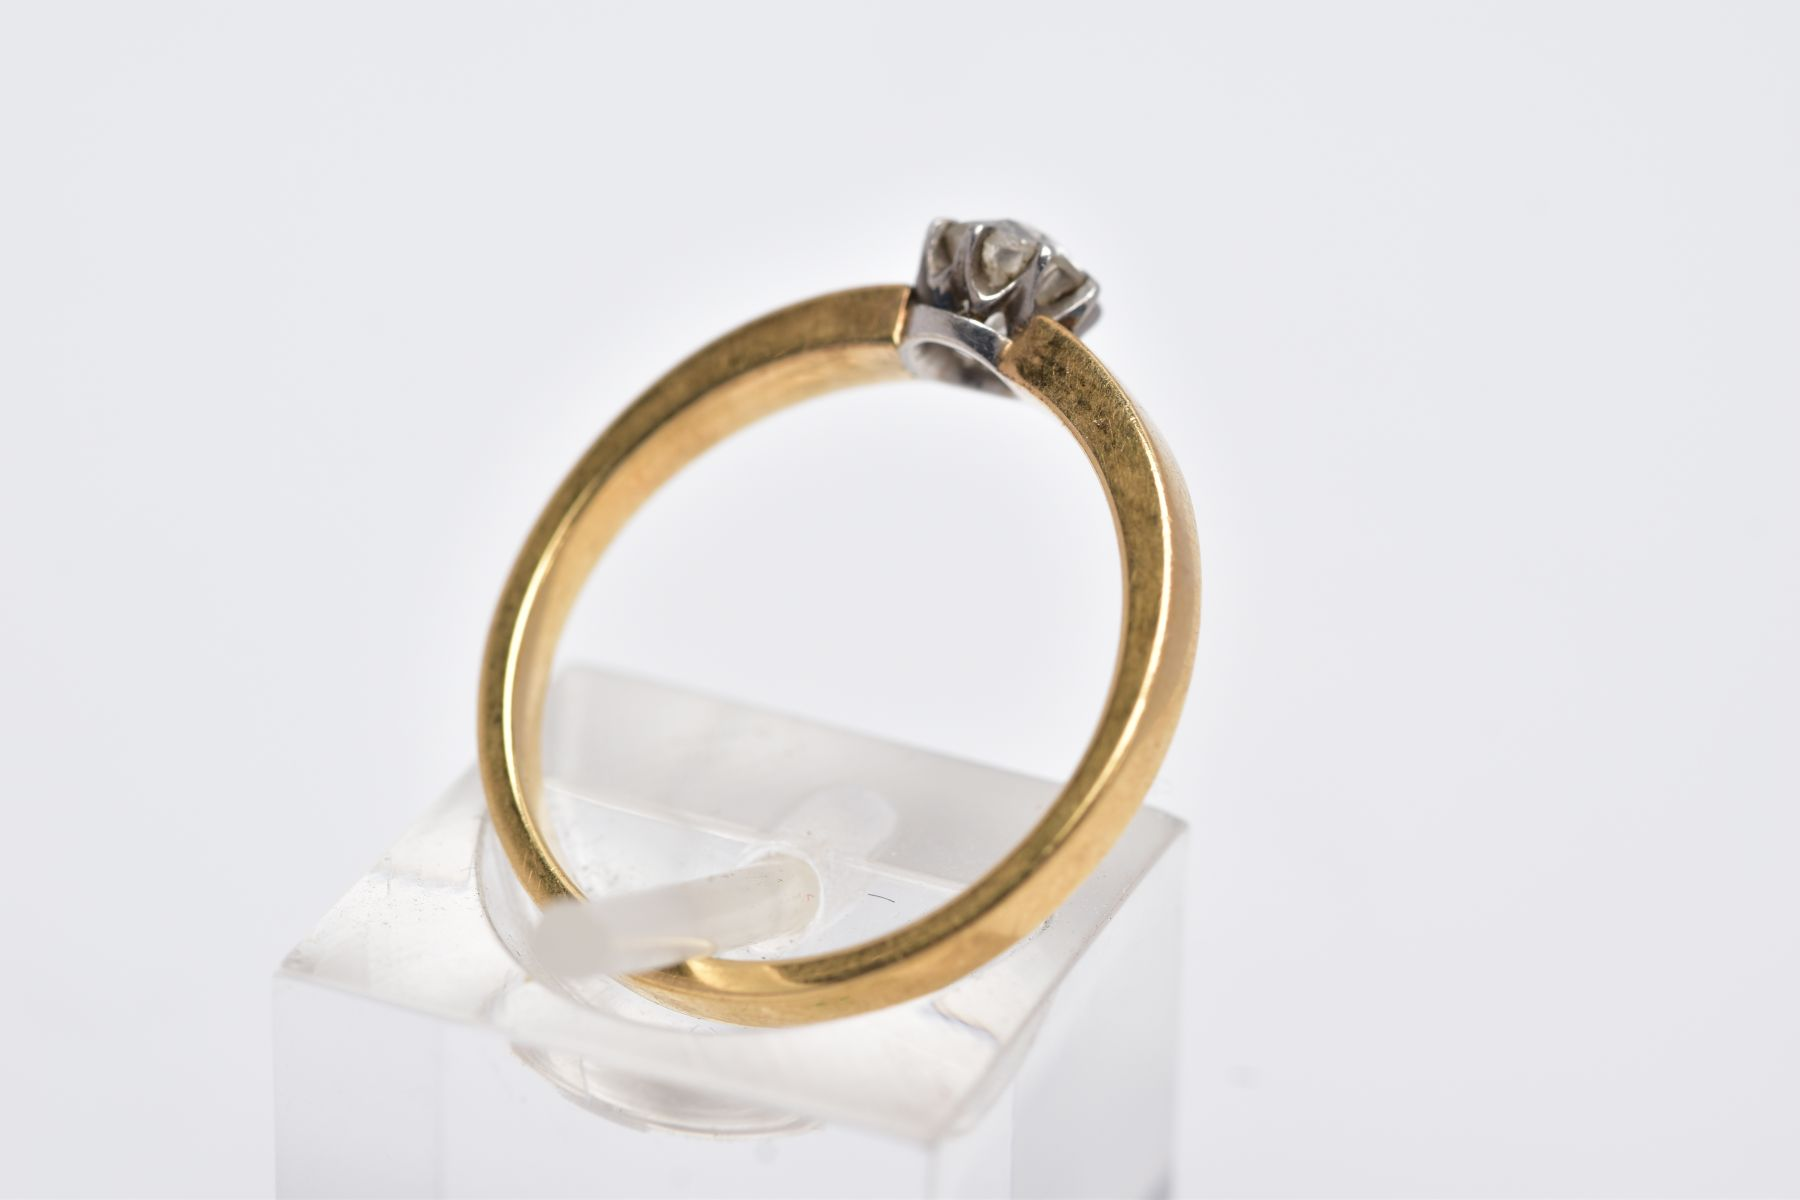 A DIAMOND SINGLE STONE RING, an old cut diamond, estimated weight 0.30ct, colour assessed as H-I, - Image 3 of 3